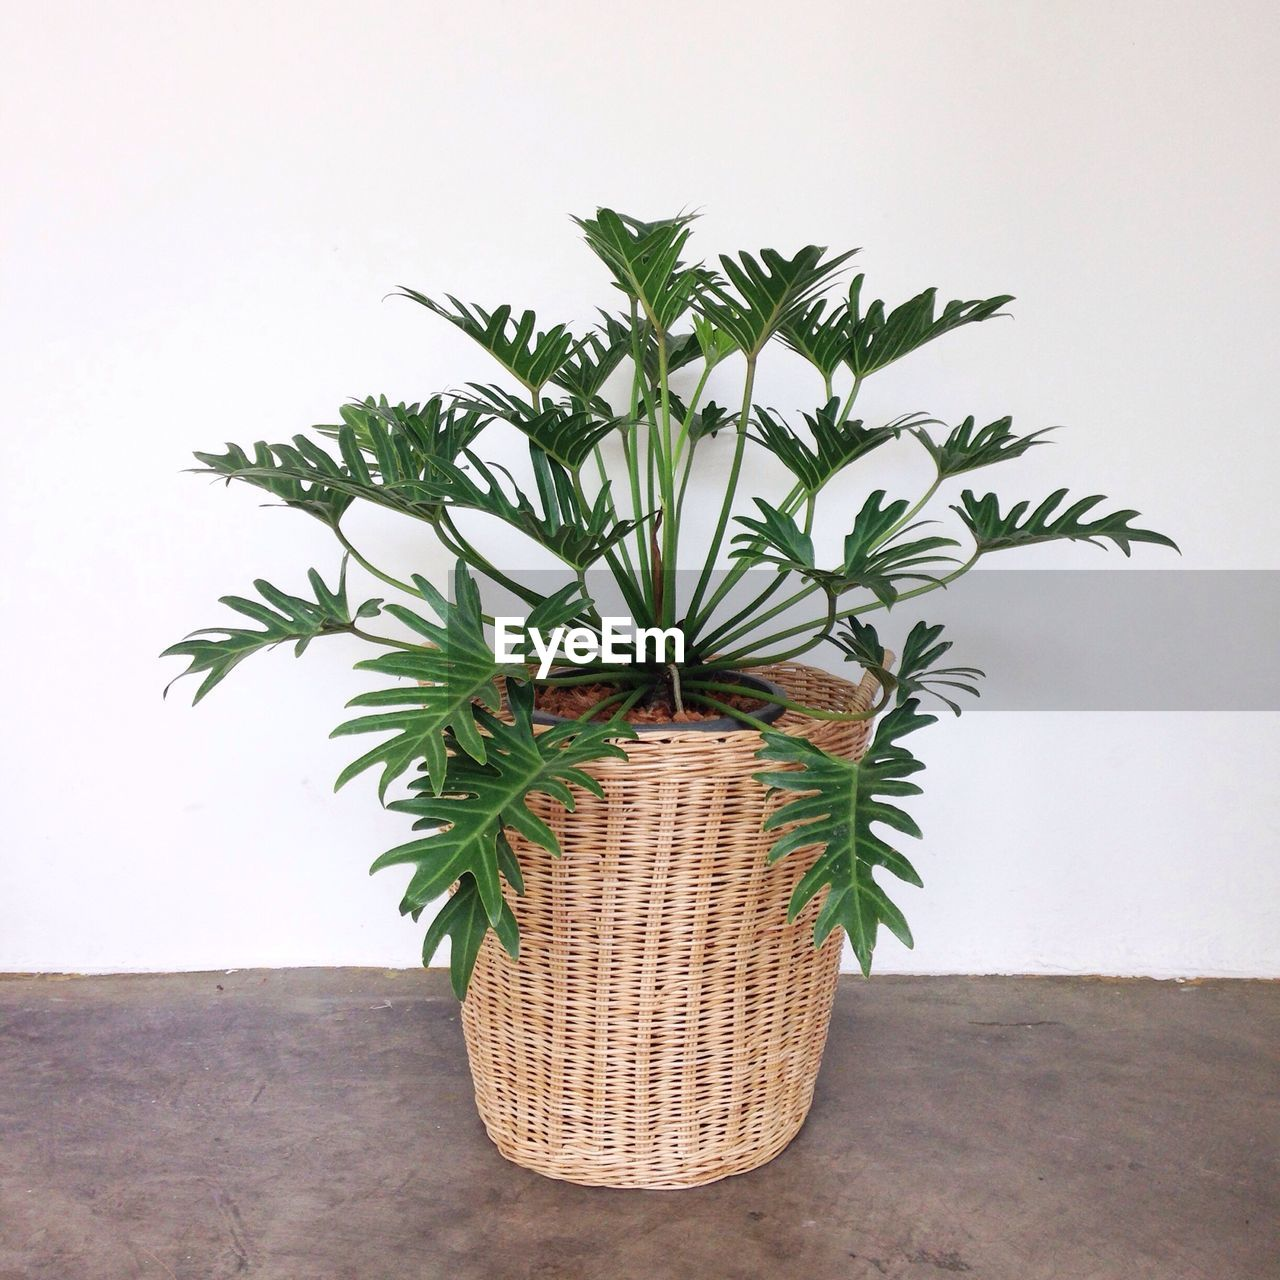 growth, plant, potted plant, indoors, leaf, nature, plant part, green color, no people, wall - building feature, close-up, day, beauty in nature, houseplant, wall, flooring, decoration, table, container, flower pot